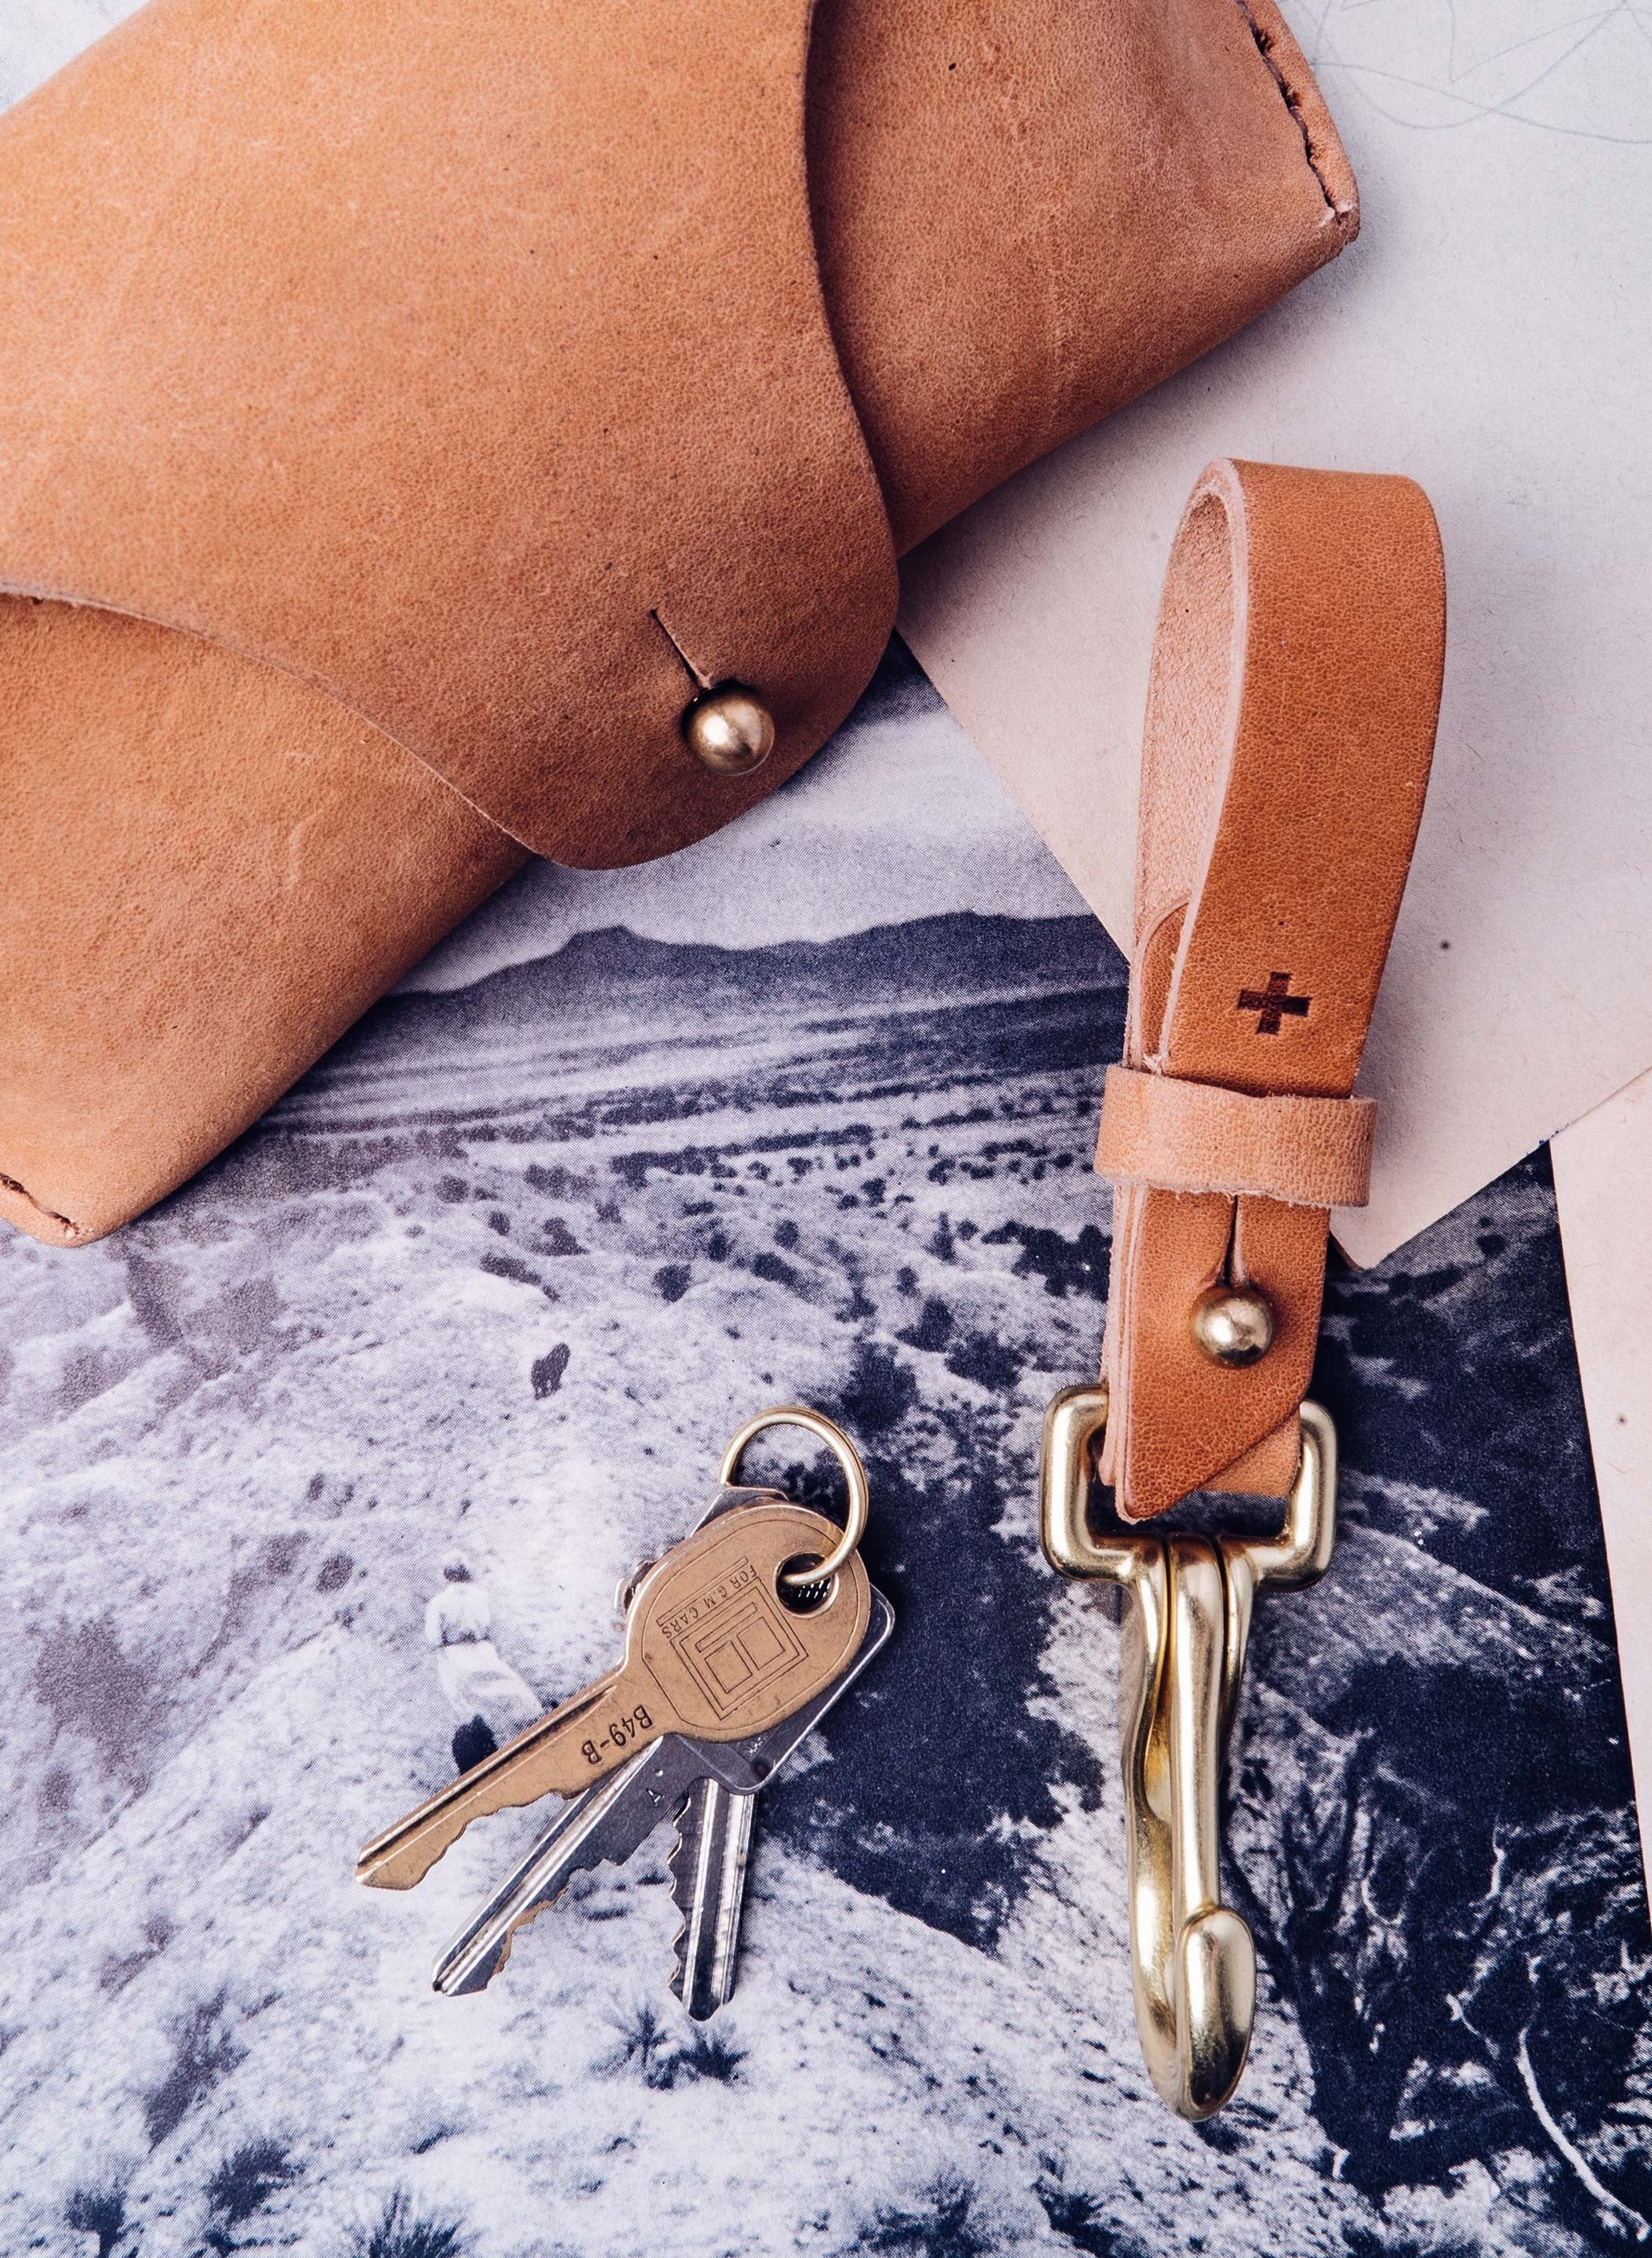 imogene + willie - emil erwin x i+w keychain in natural